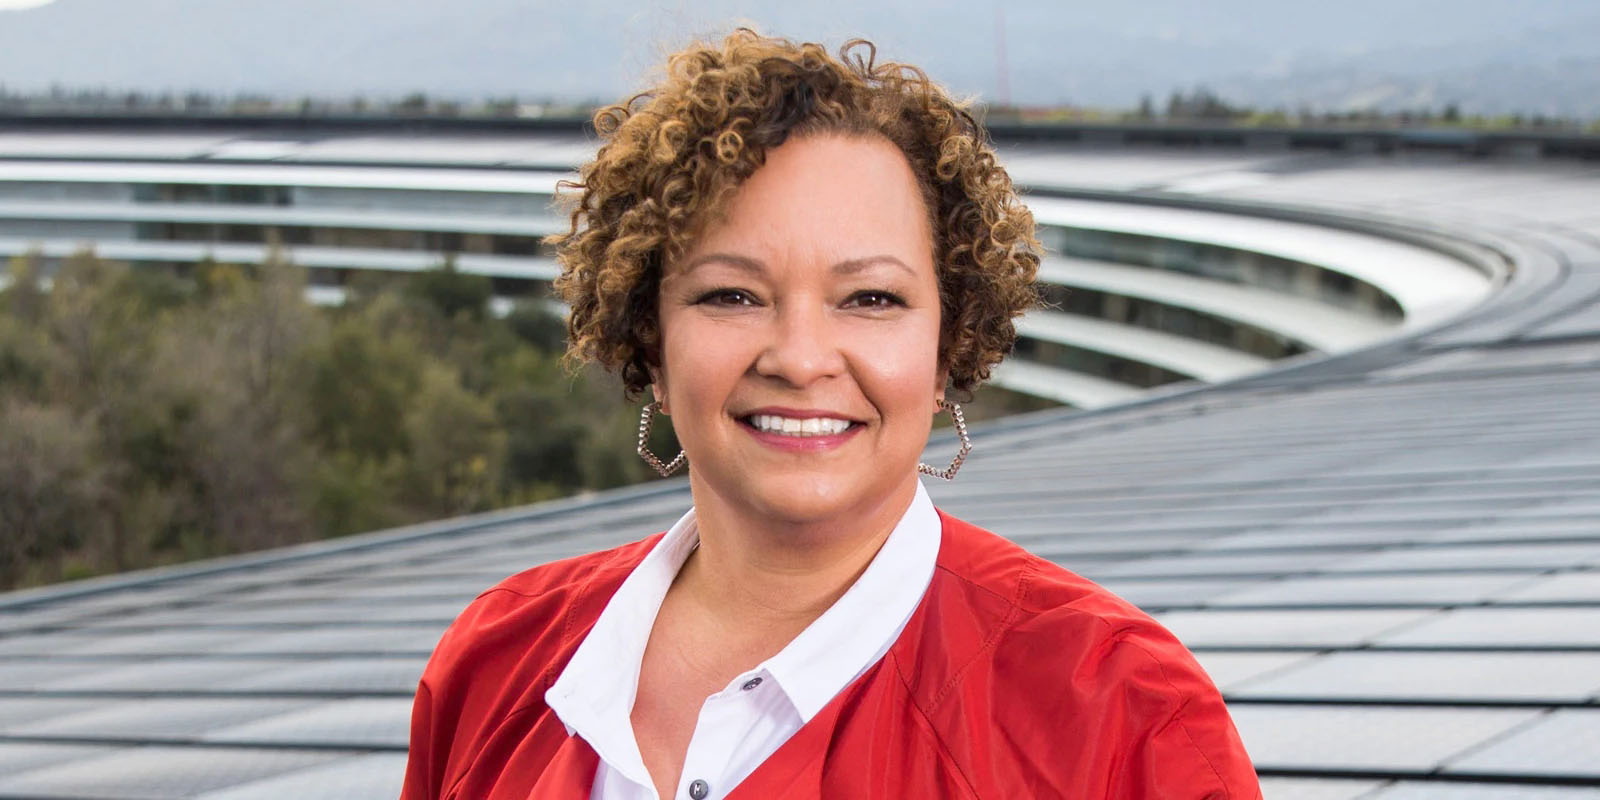 photo of Lisa Jackson says Apple buys carbon offsets, but 80% is real clean energy image